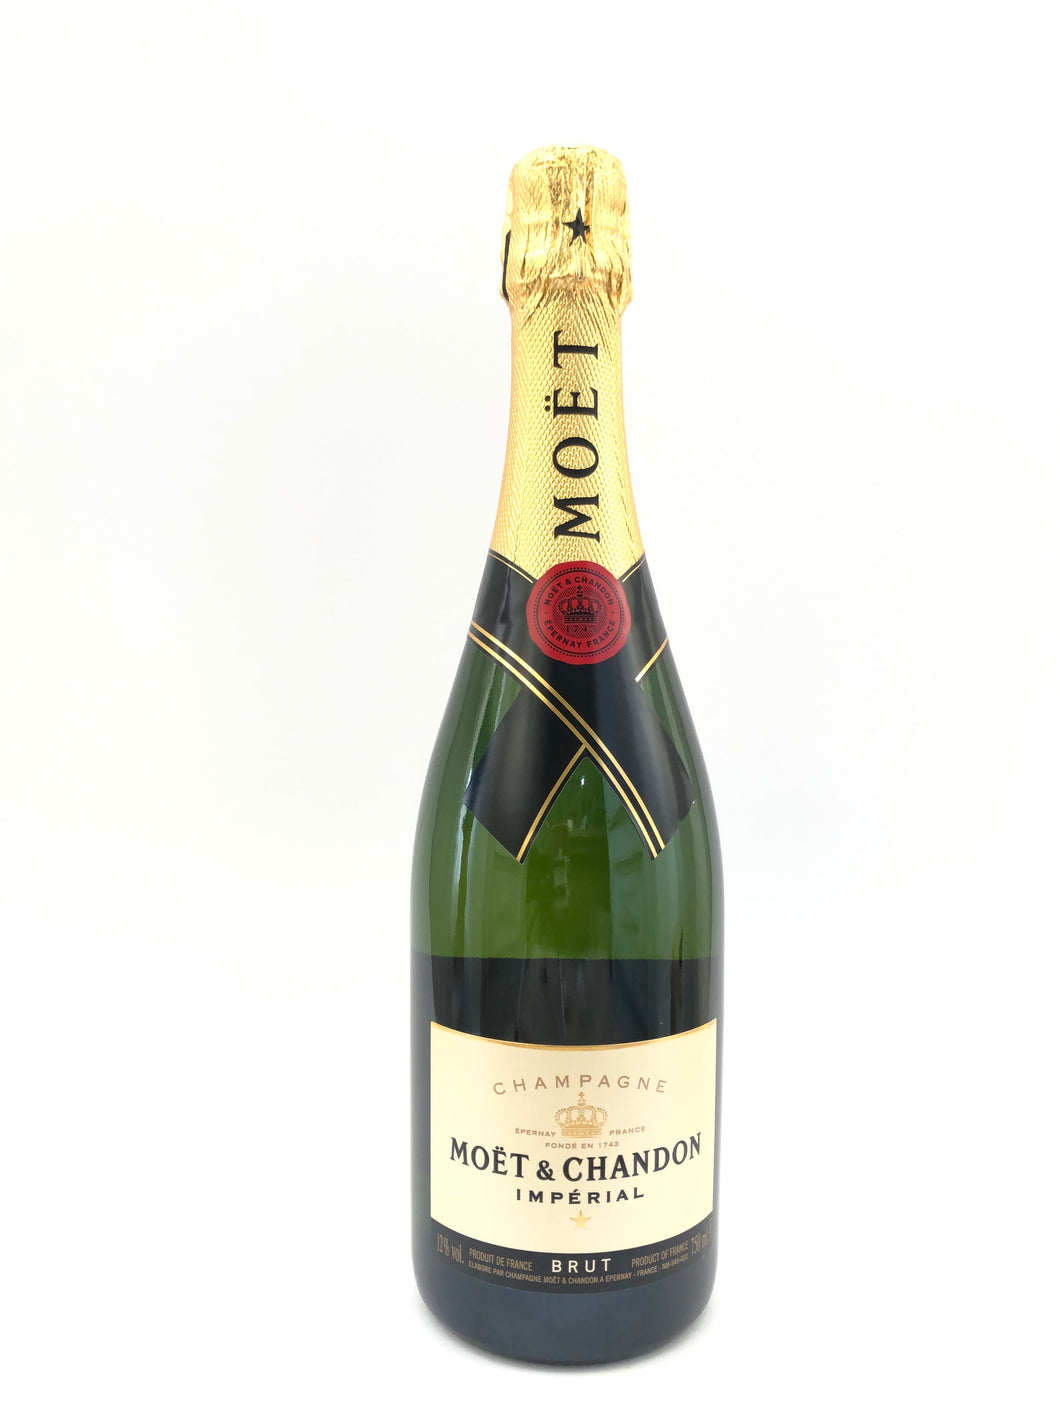 MOET ET CHANDON BRUT IMPERIAL NV 12% 75CL